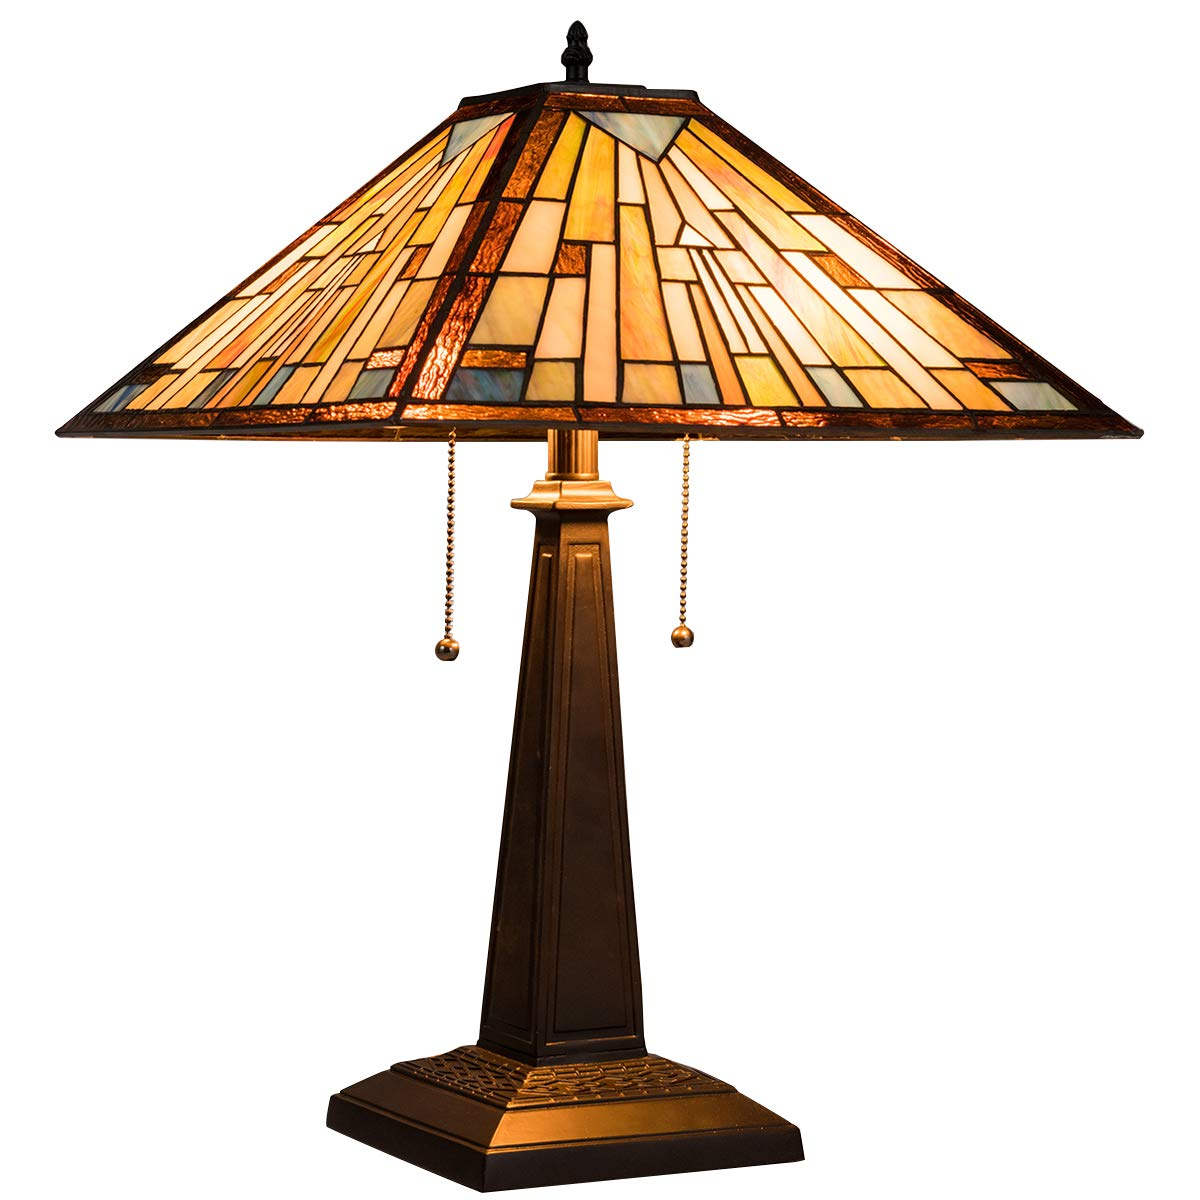 Tangkula Tiffany Style Table Lamp, 16 Inch Tall Tetragonal Reading Light, Stained Glass Lampshade Antique Base Table Lamps, Suitable for Bedroom, Living Room